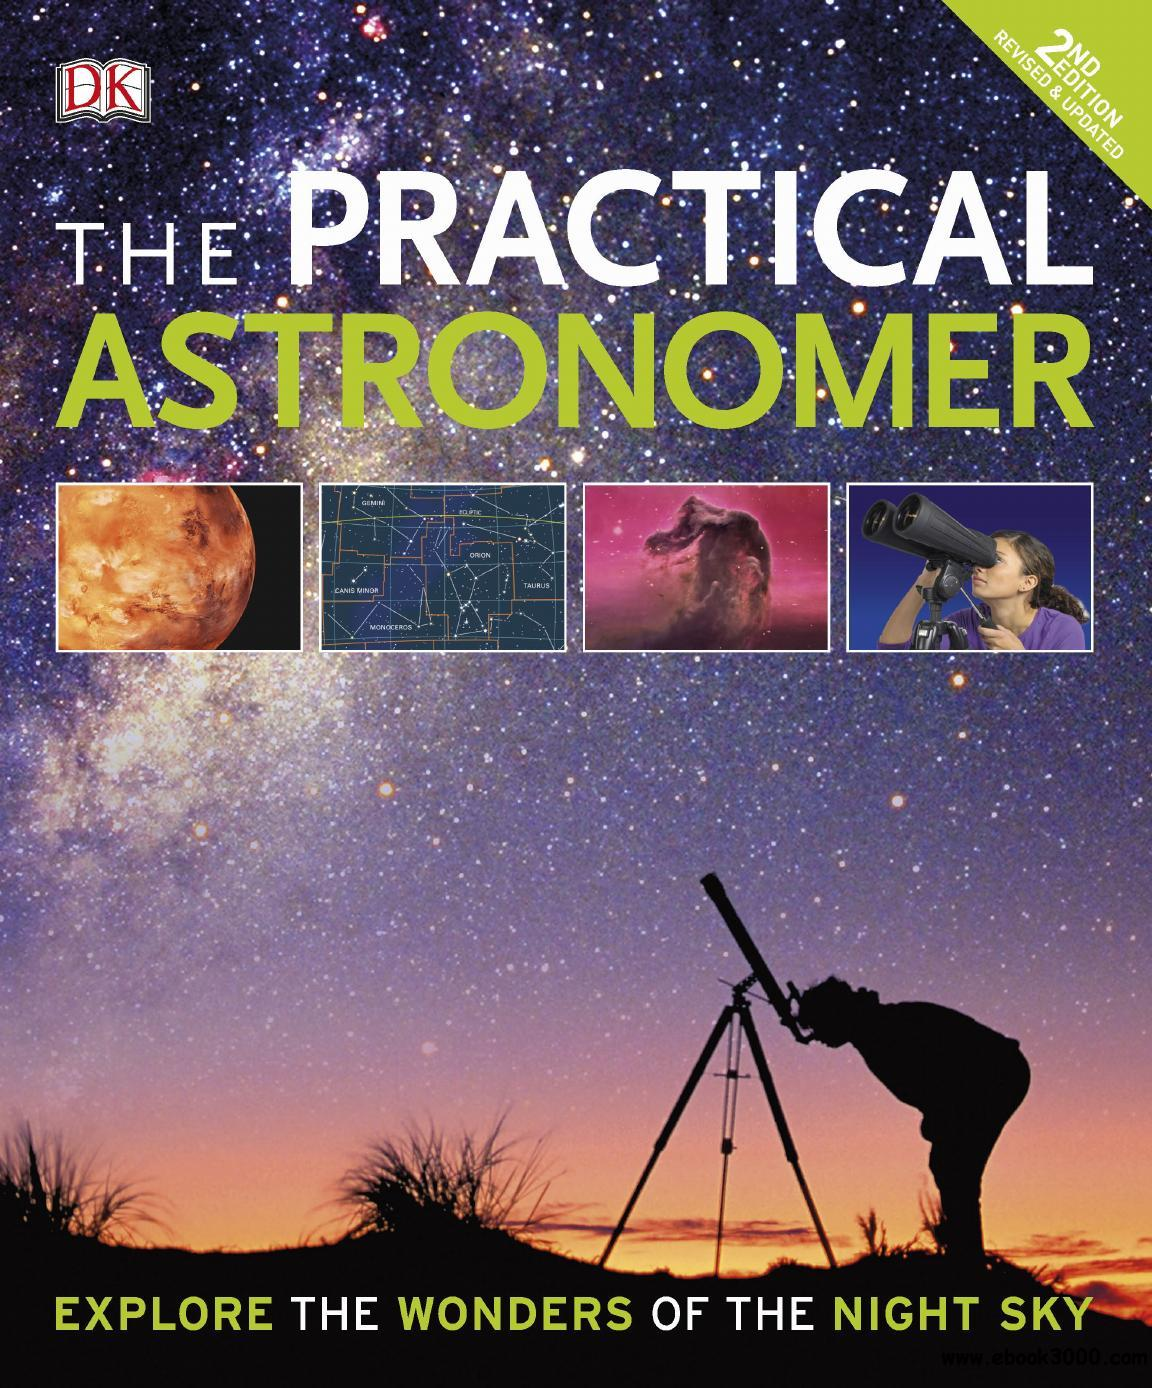 The Practical Astronomer: Explore the Wonders of the Night Sky, 2nd Edition